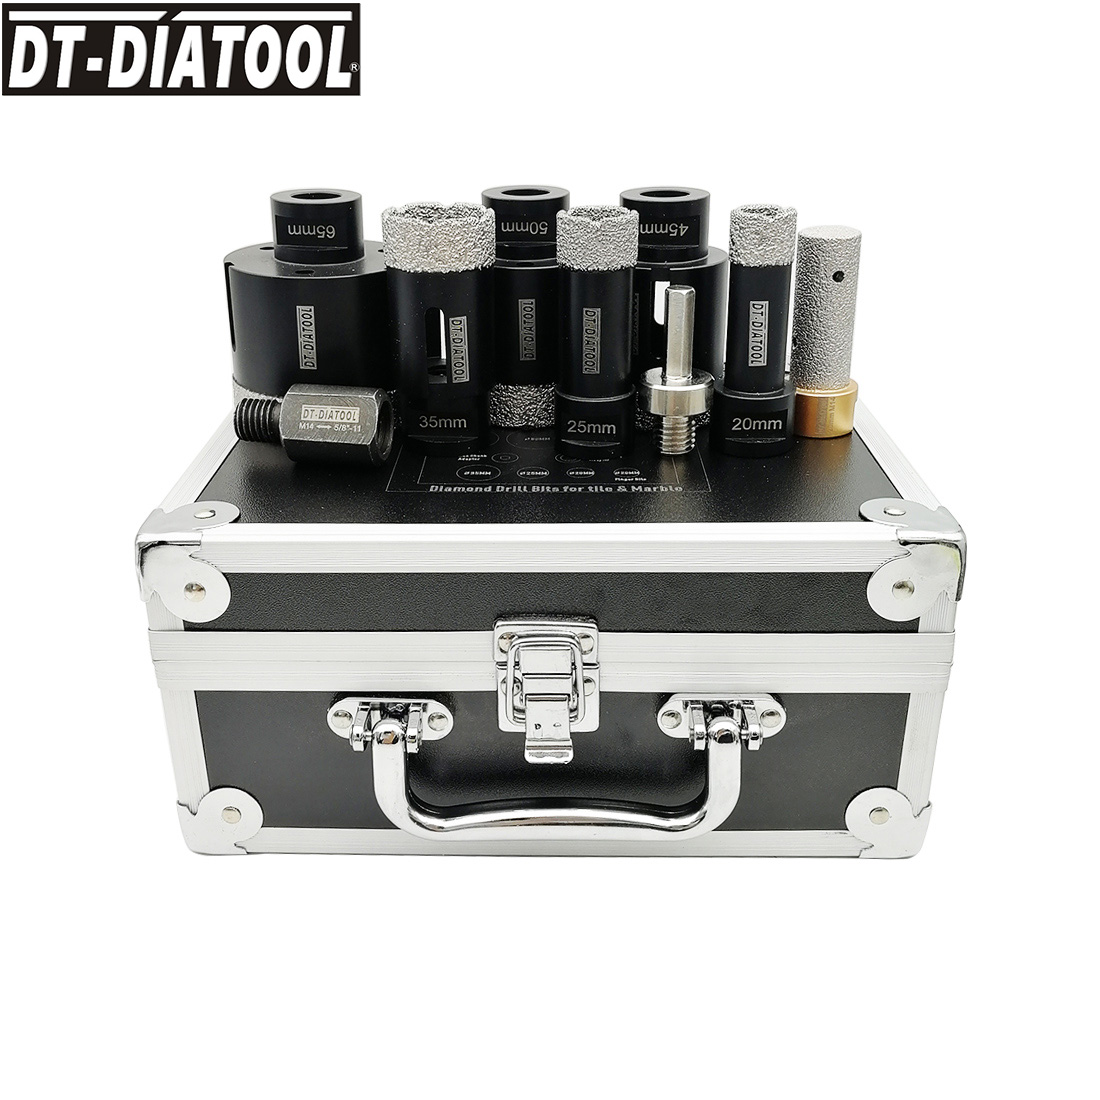 DT-DIATOOL 1set Boxed Vacuum Brazed Diamond Drill Core Bits, M14 Or 5/8-11 Mixed Size Hole Saw Plus 3/8